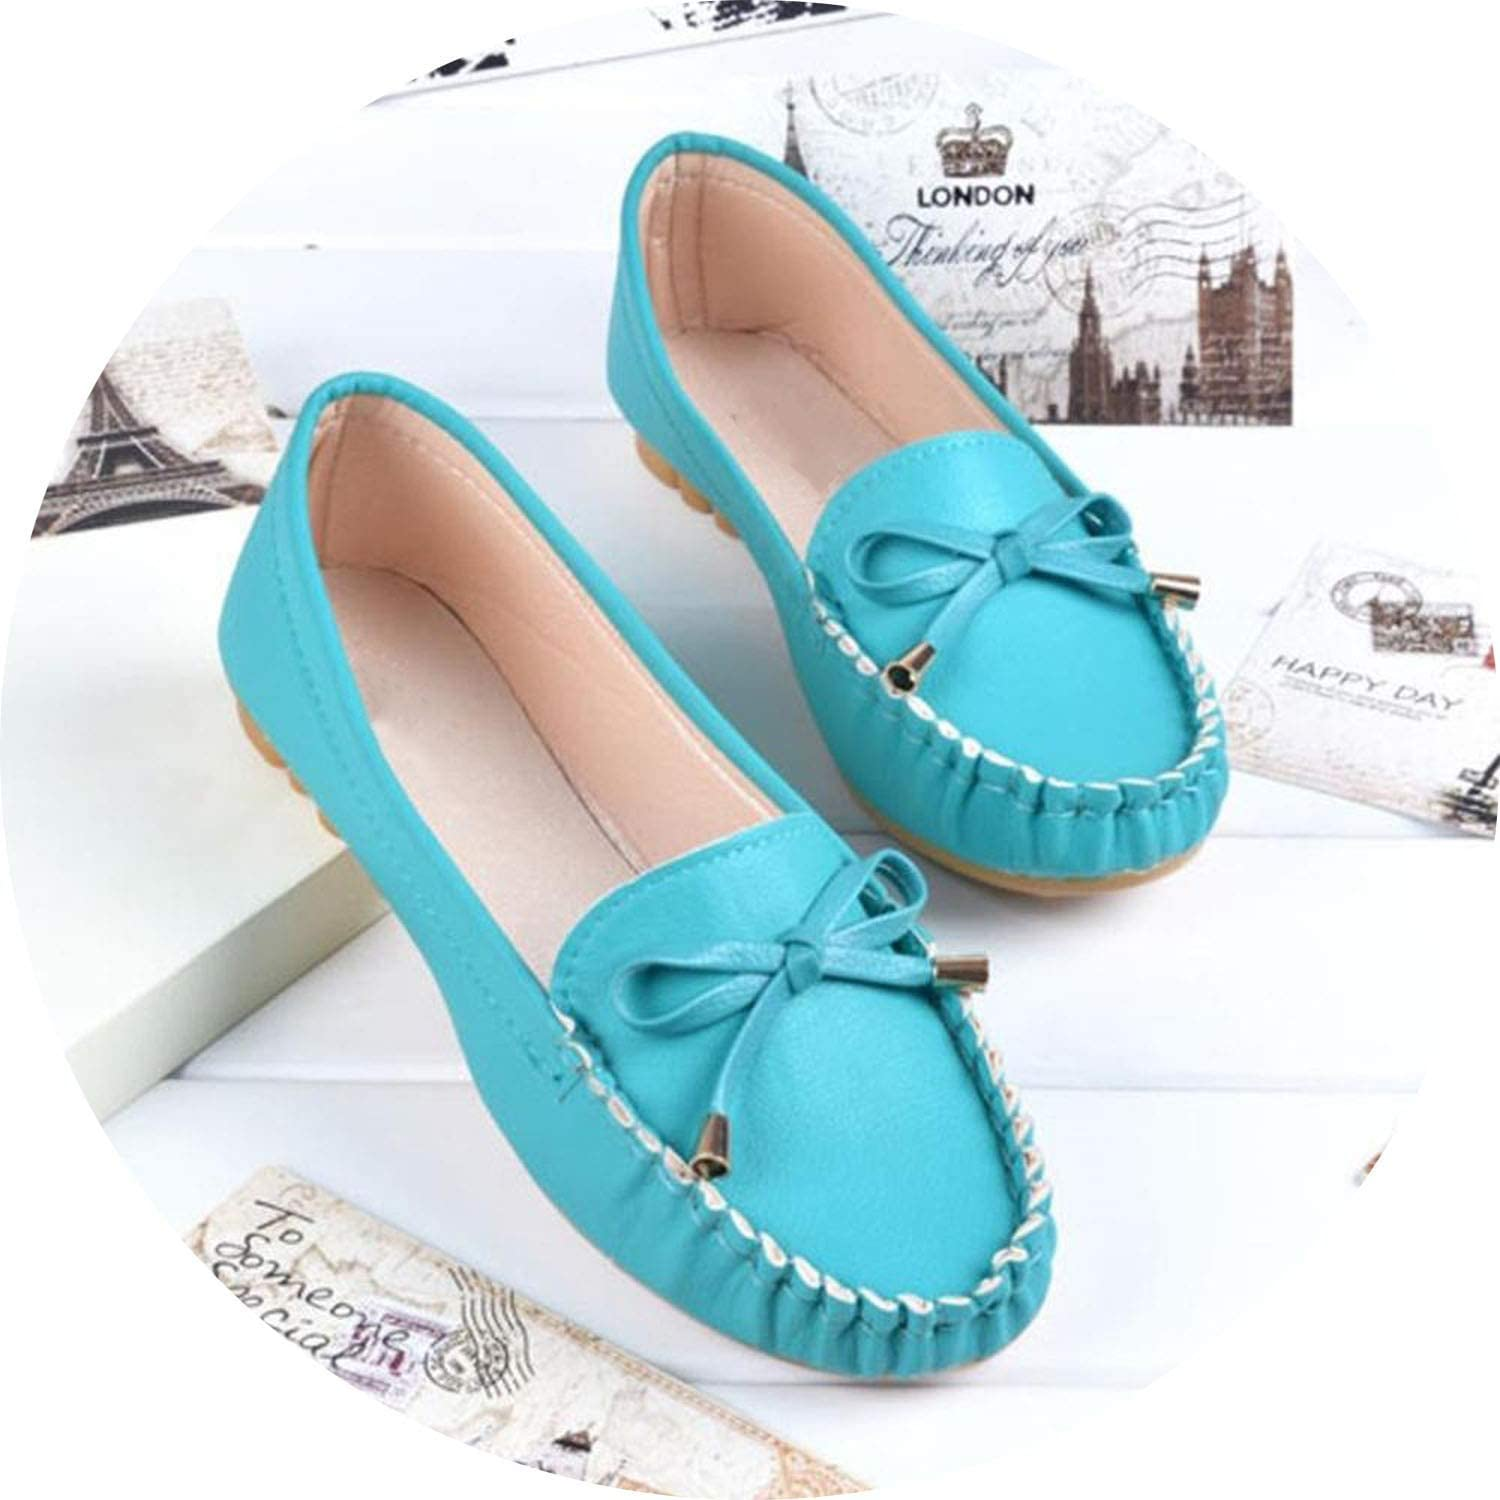 Ting room 4colors Women Loafers Fashion Slip on shoes Pu Leather Flats Bow Boat shoes Woman Fringed Flat shoes